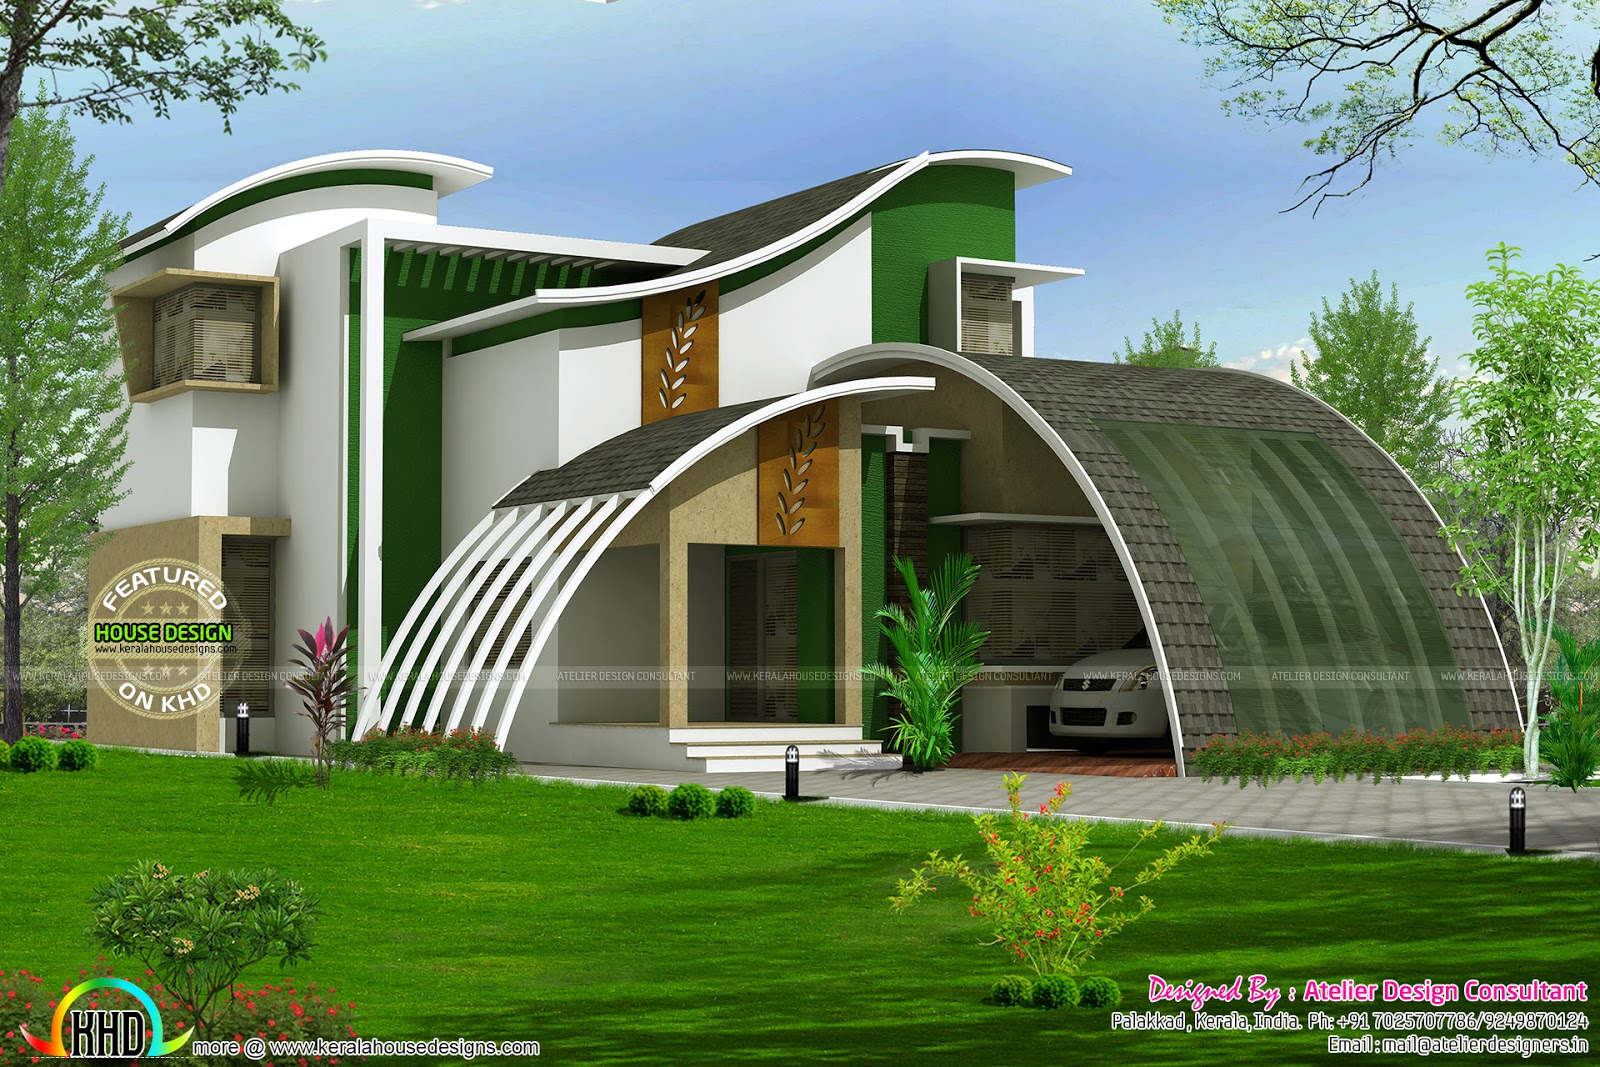 Flowing style curvy roof home plan kerala home design and floor plans - Design of home ...